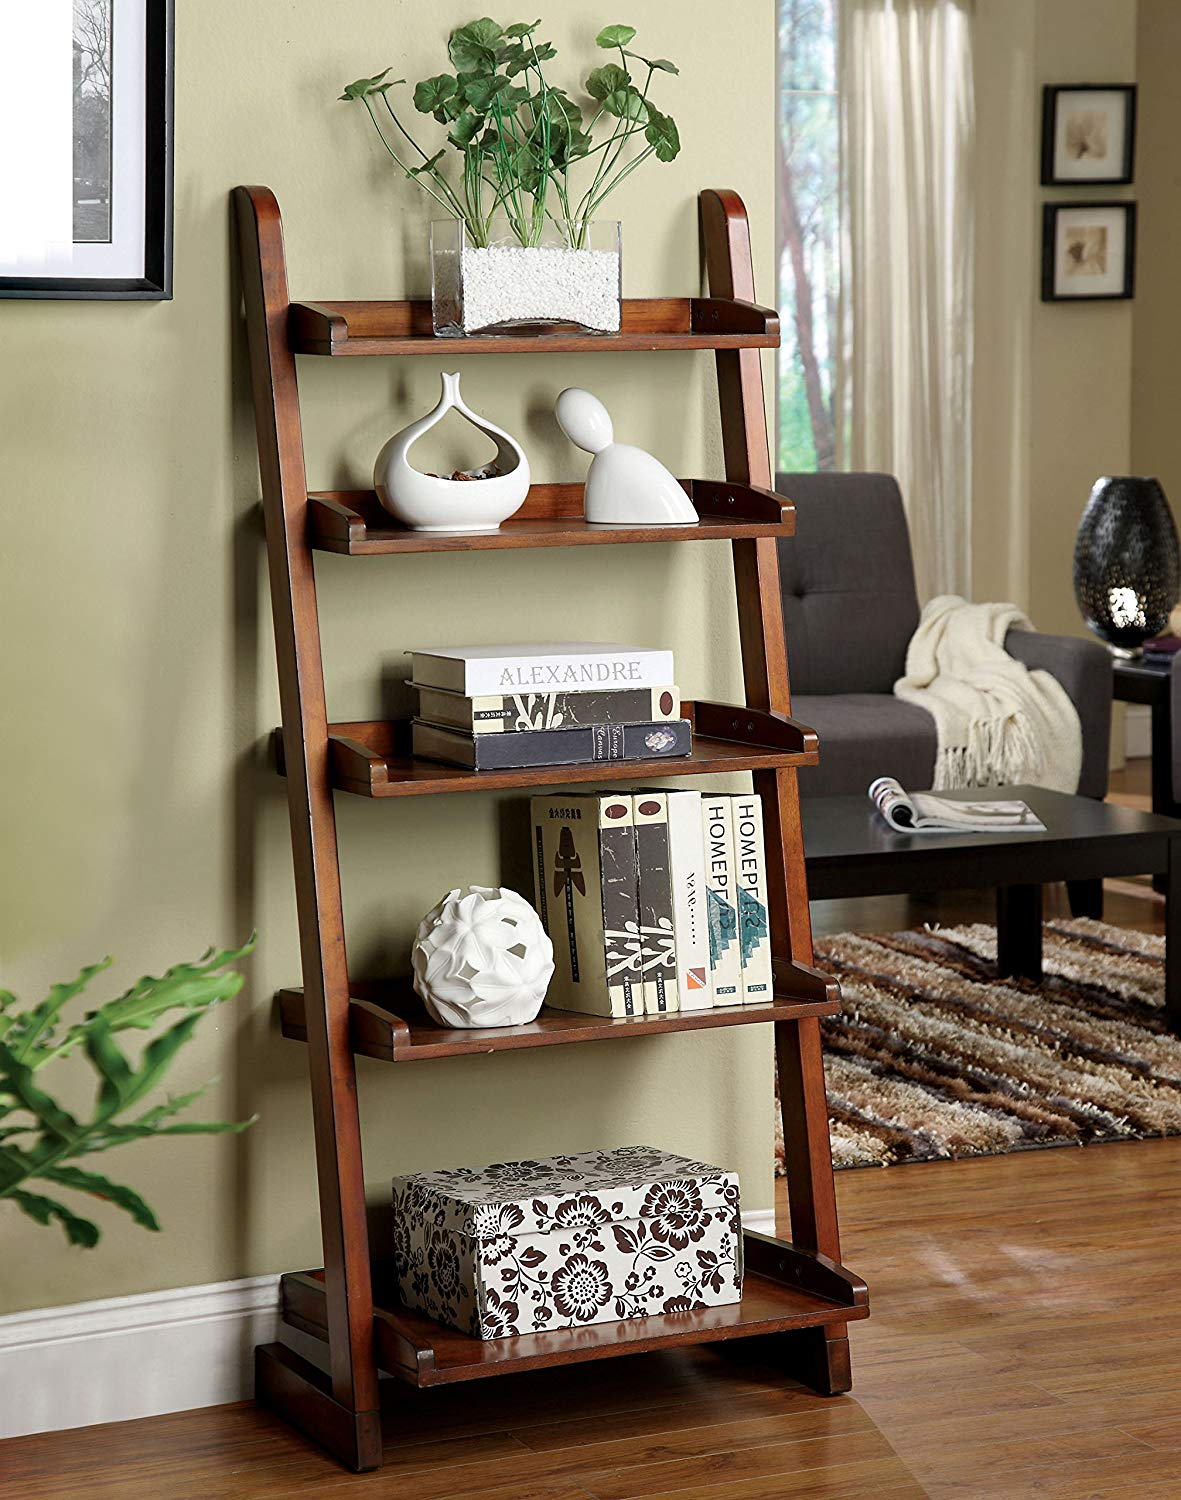 wide-antique-style-ladder-shelf-dark-glossy-wood-finish